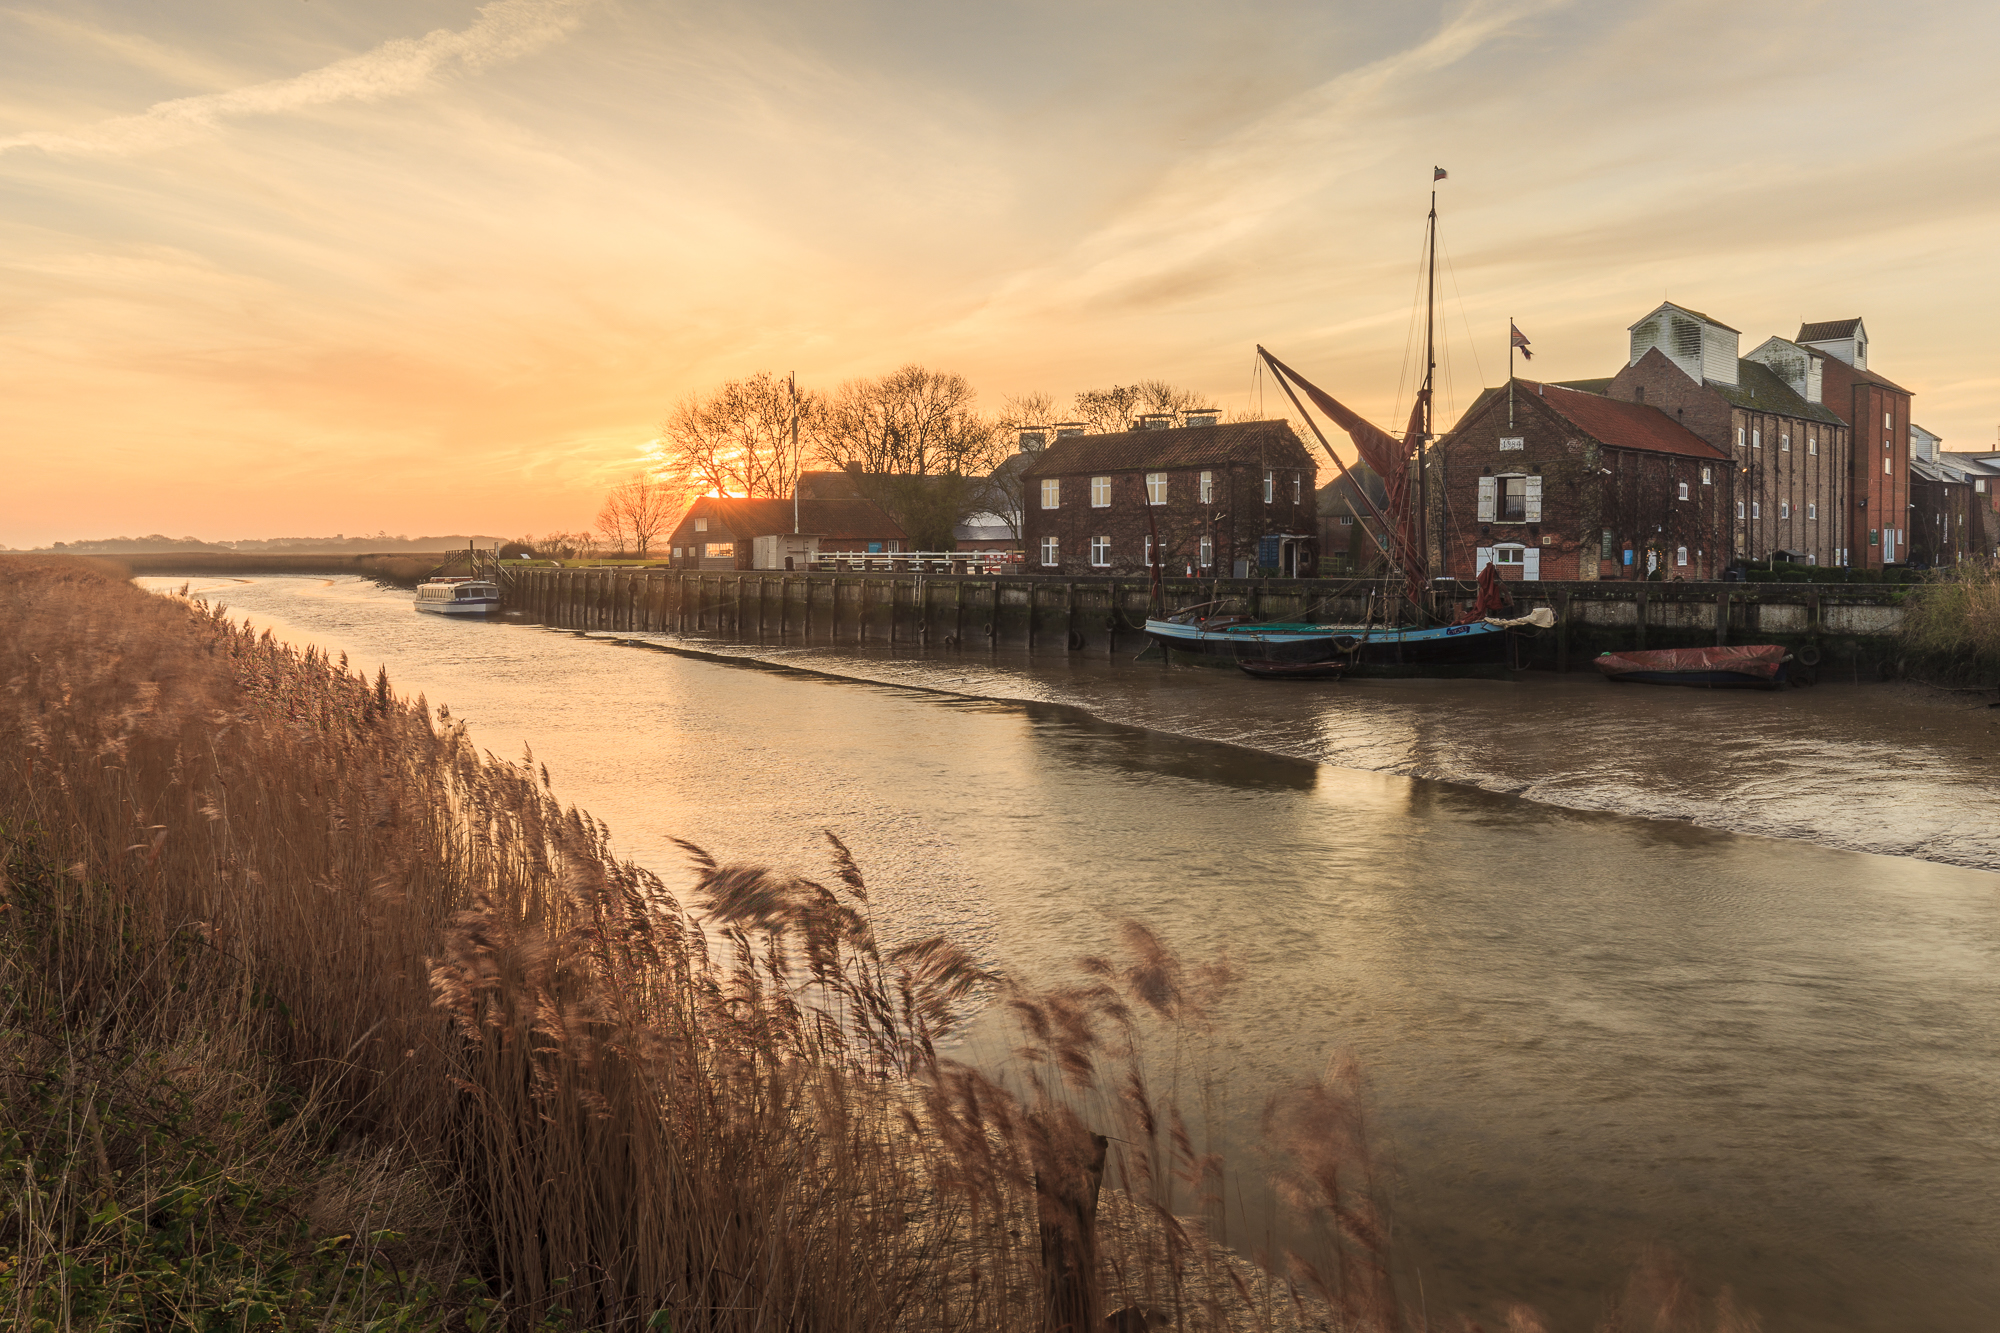 Snape Maltings is a familiar site on the banks of the River Alde